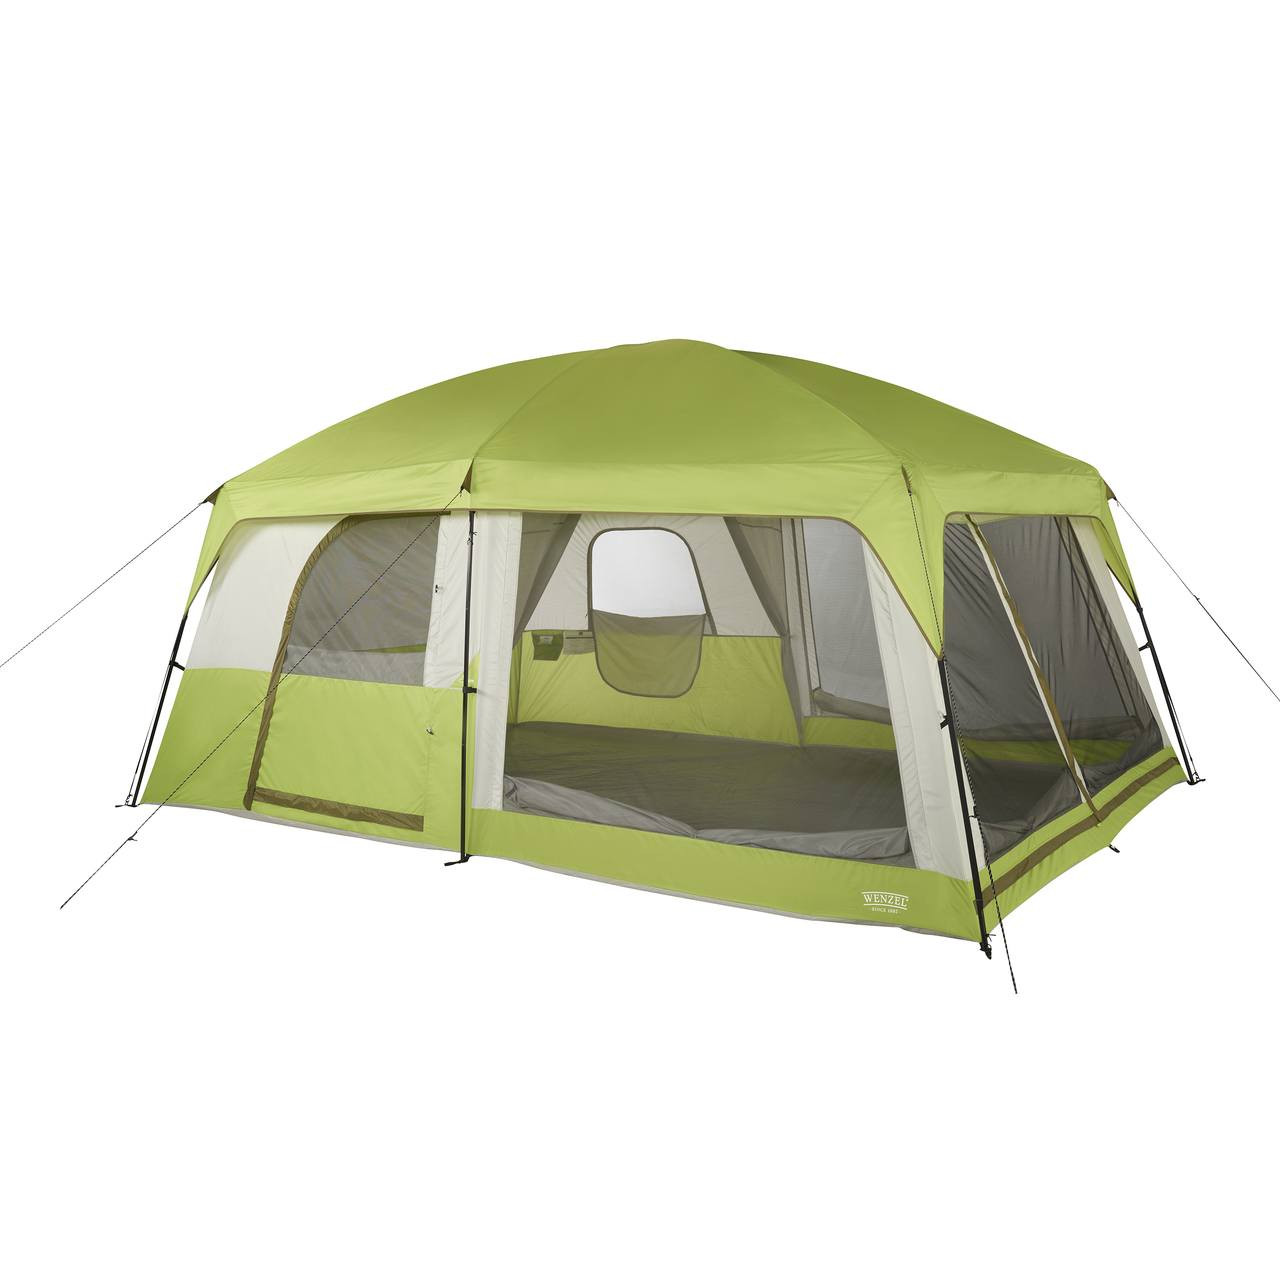 Wenzel Eldorado 10 tent, light green and gray, completely set up with the rain fly on, guy lines extended and screen door covers rolled down with the inside tent doors not set up